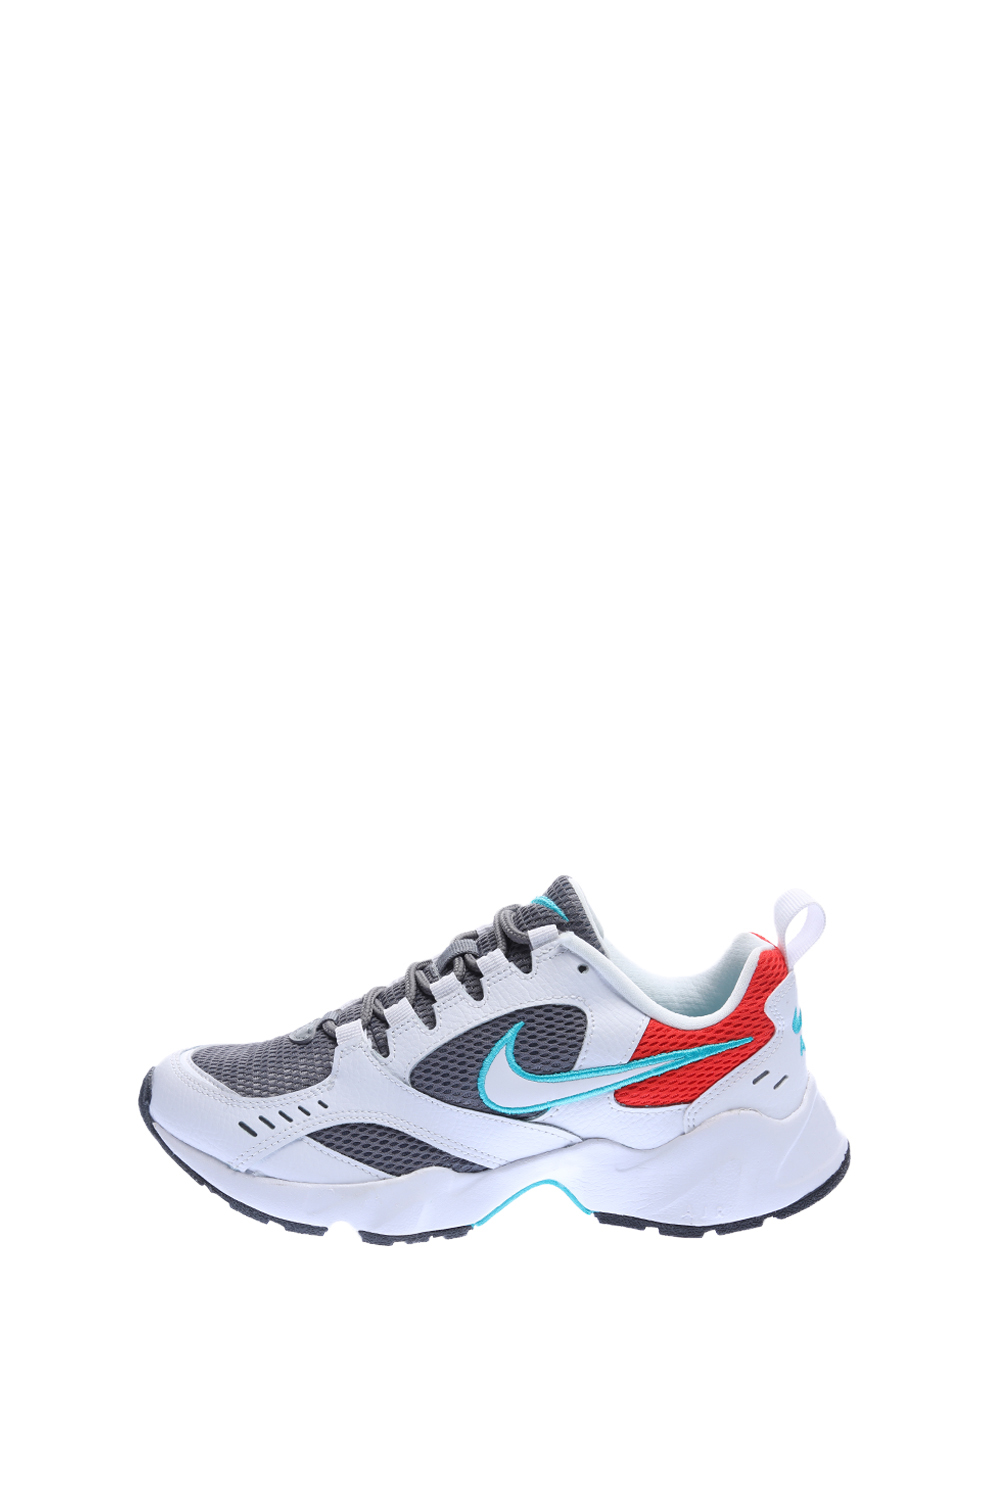 NIKE – Γυναικεία παπούτσια running NIKE AIR HEIGHTS λευκά